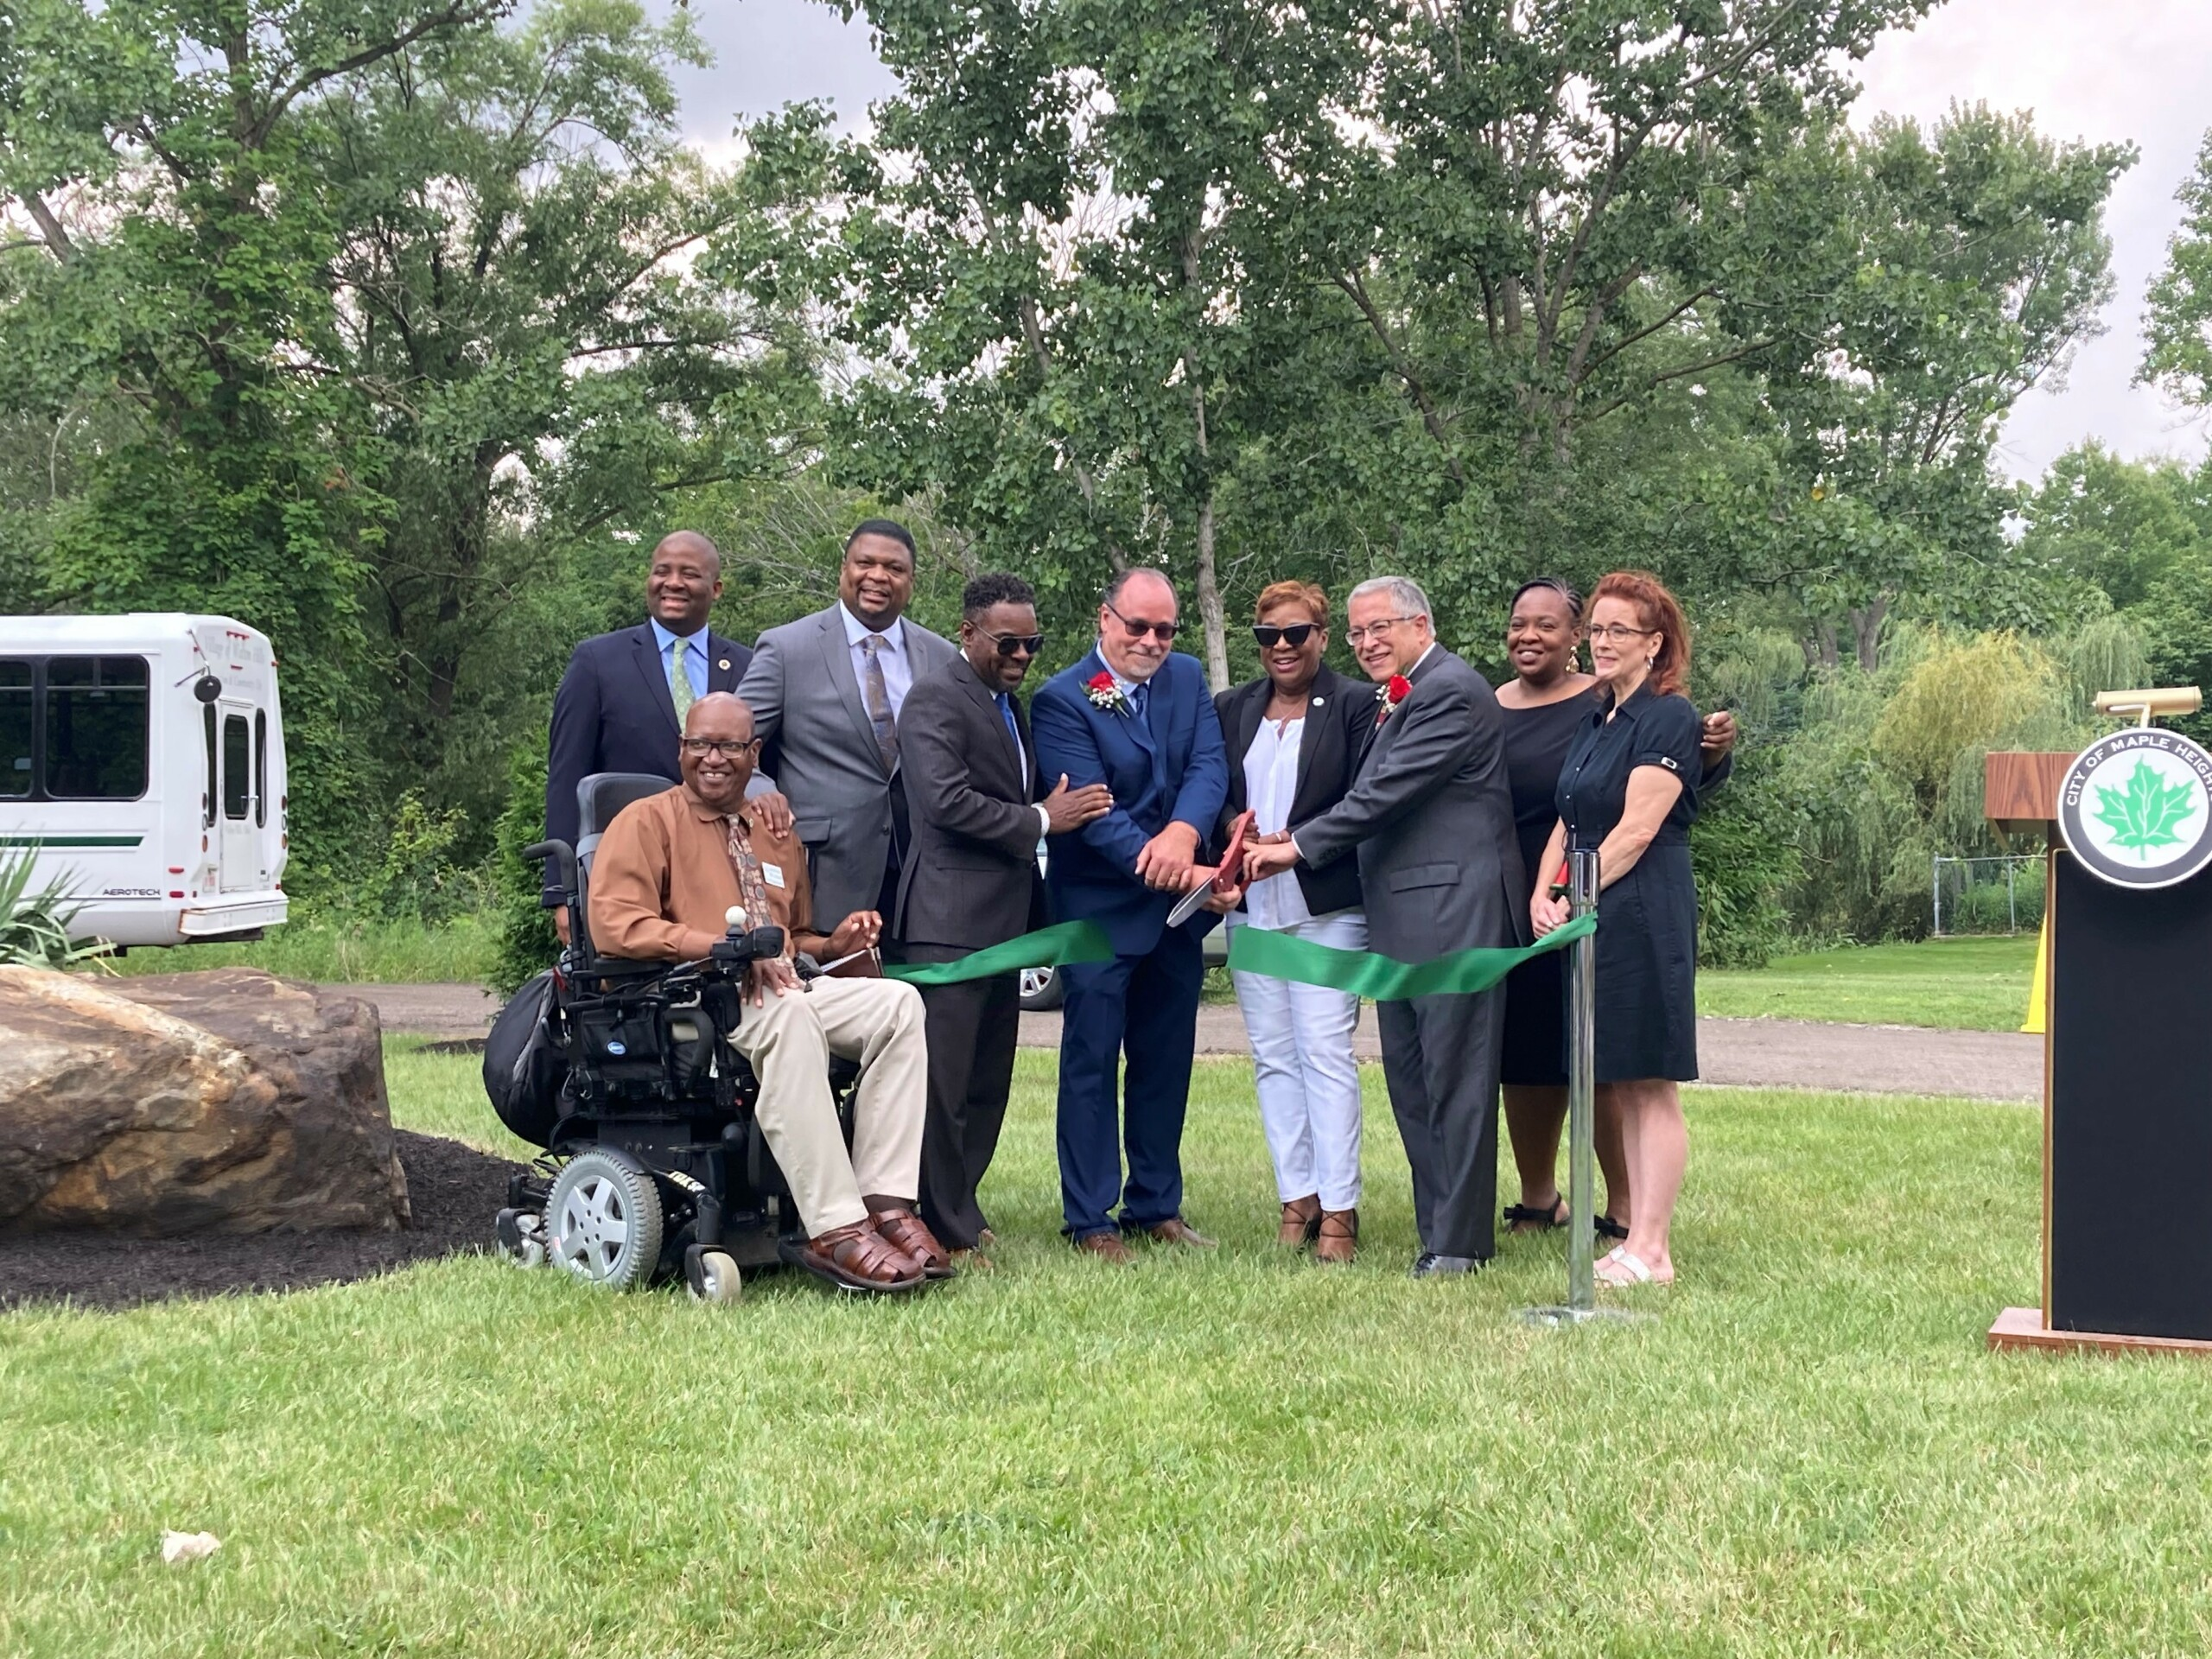 Mayor Blackwell of Maple Heights and Mayor Kolograf of Walton Hills along with other elected officials cut ribbon on July 30, 2021.